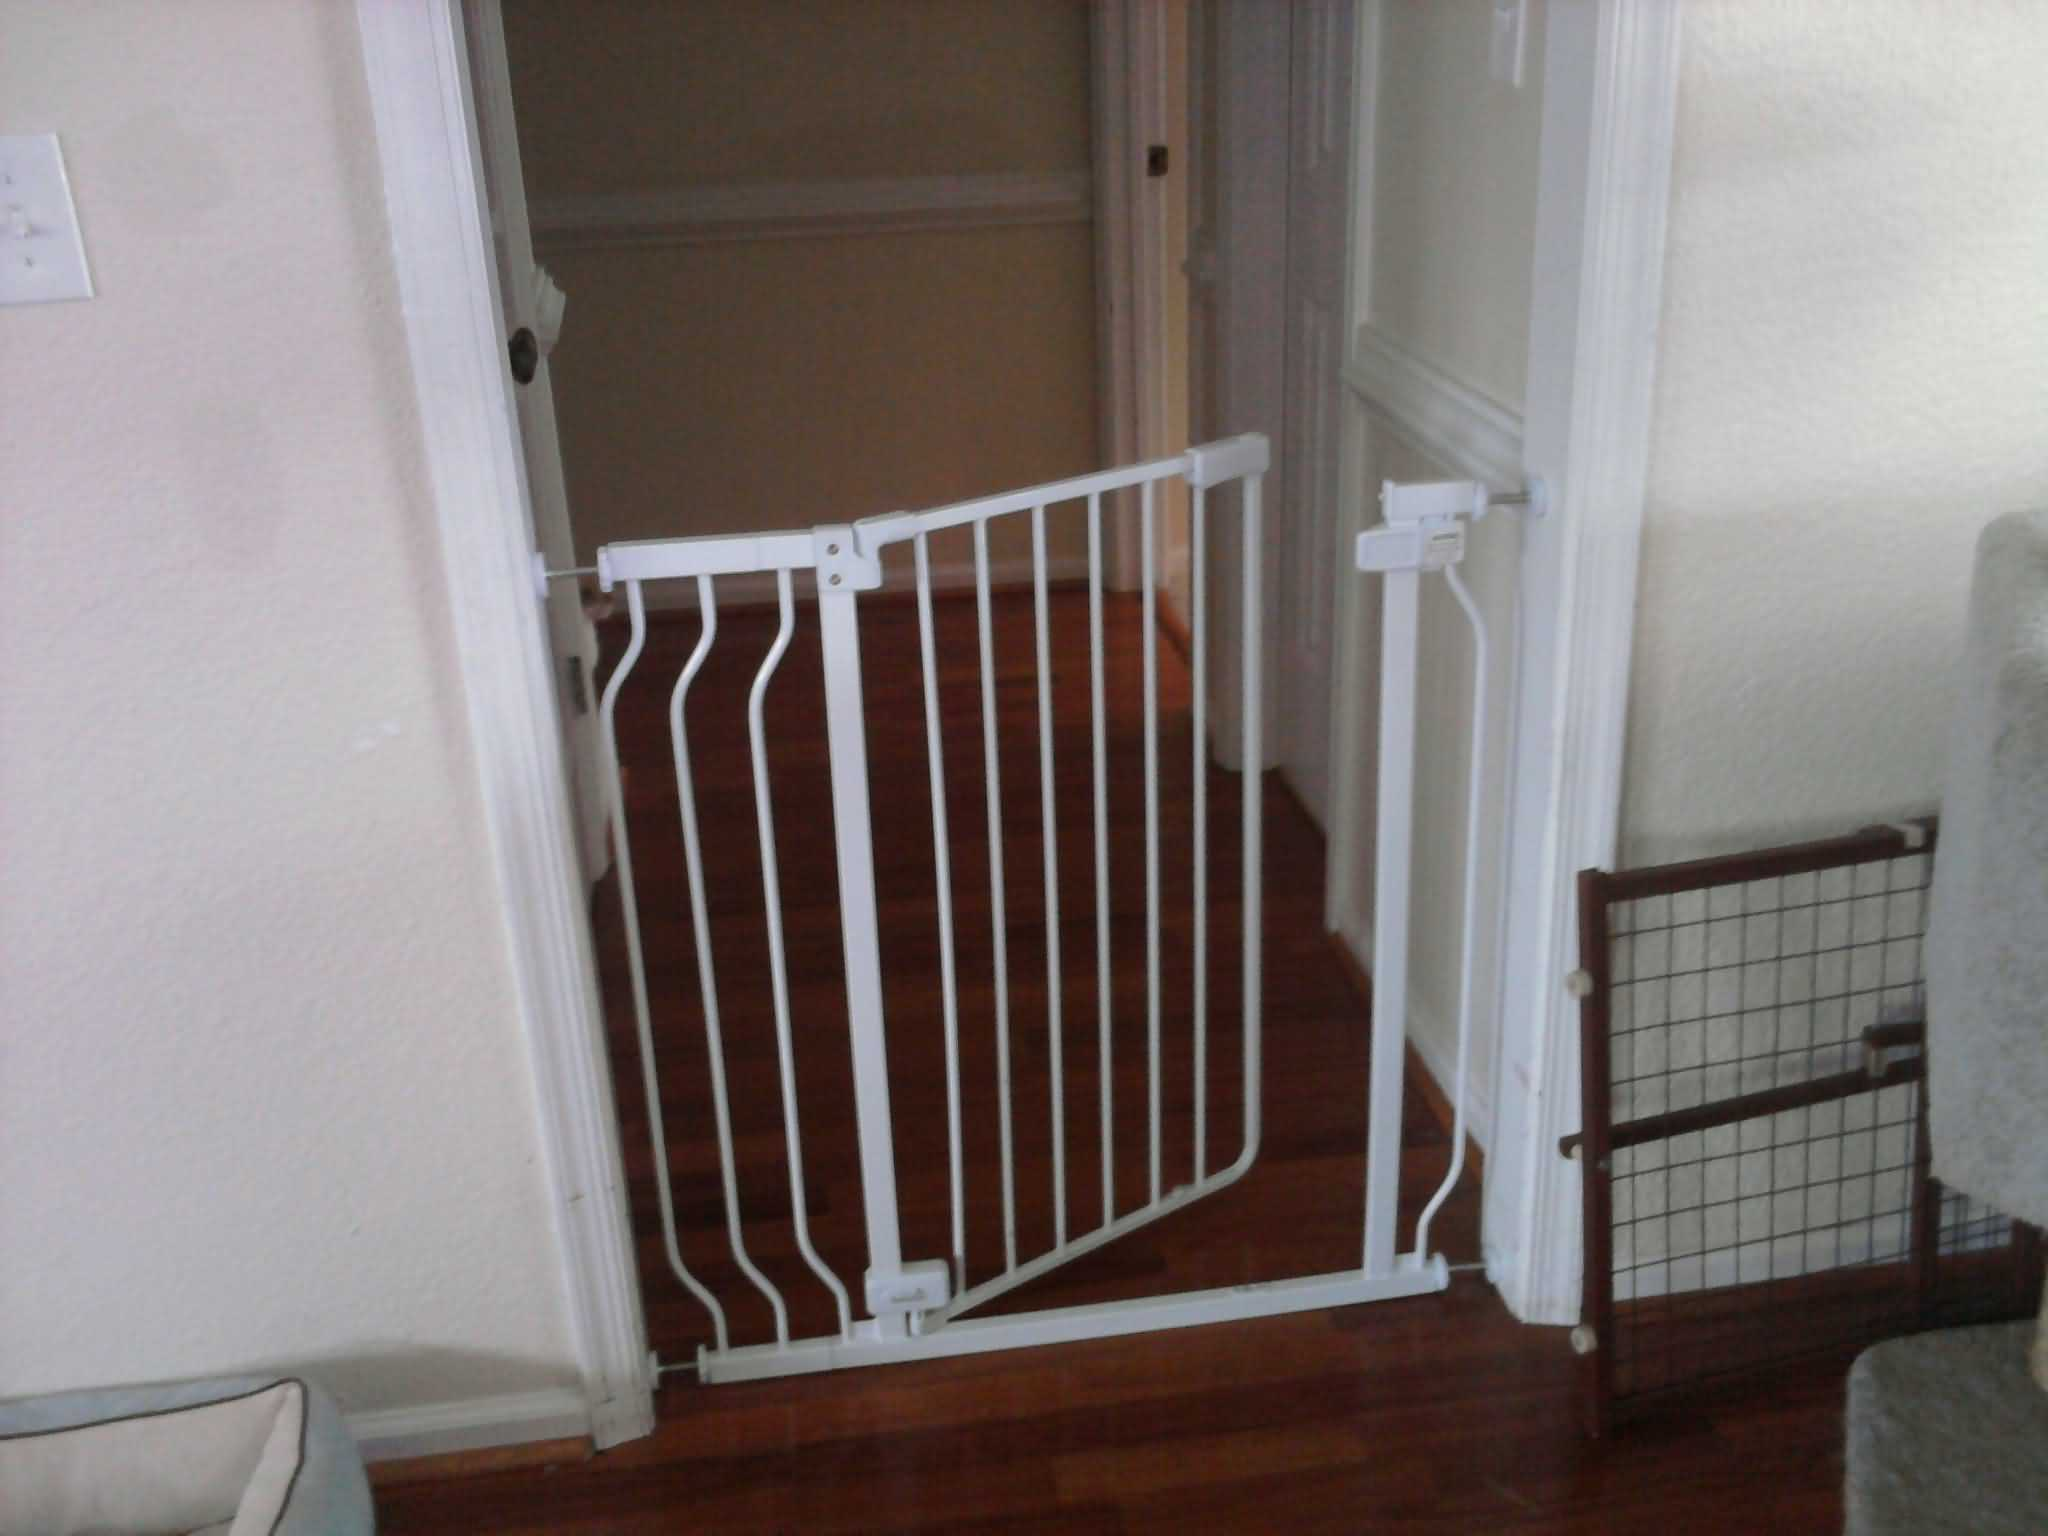 Le Meilleur Baby Doors Wrought Iron Stair Gate Best 25 Baby Gates Ce Mois Ci